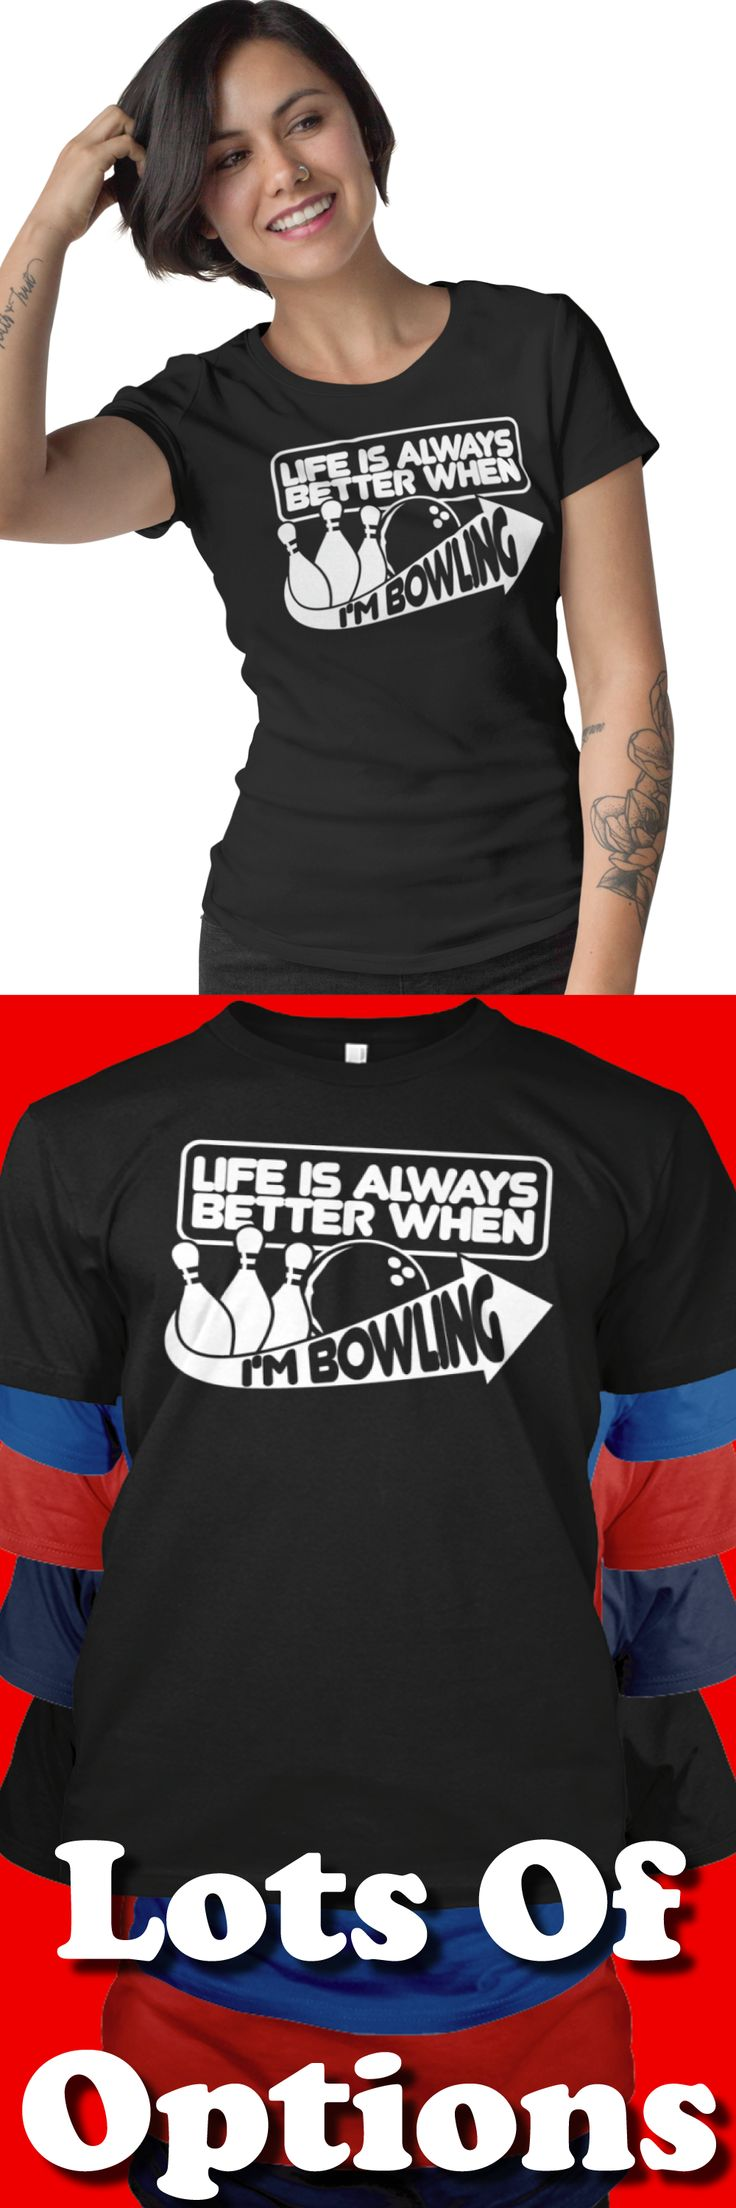 Bowling Shirts: Do You Love Bowling? Great Bowling Gift! Lots Of Sizes & Colors. Love Bowling? Love Funny Bowling Shirts? Wear Bowling Shirts? Strict Limit Of 5 Shirts! Treat Yourself & Click Now! https://teespring.com/MH76-959